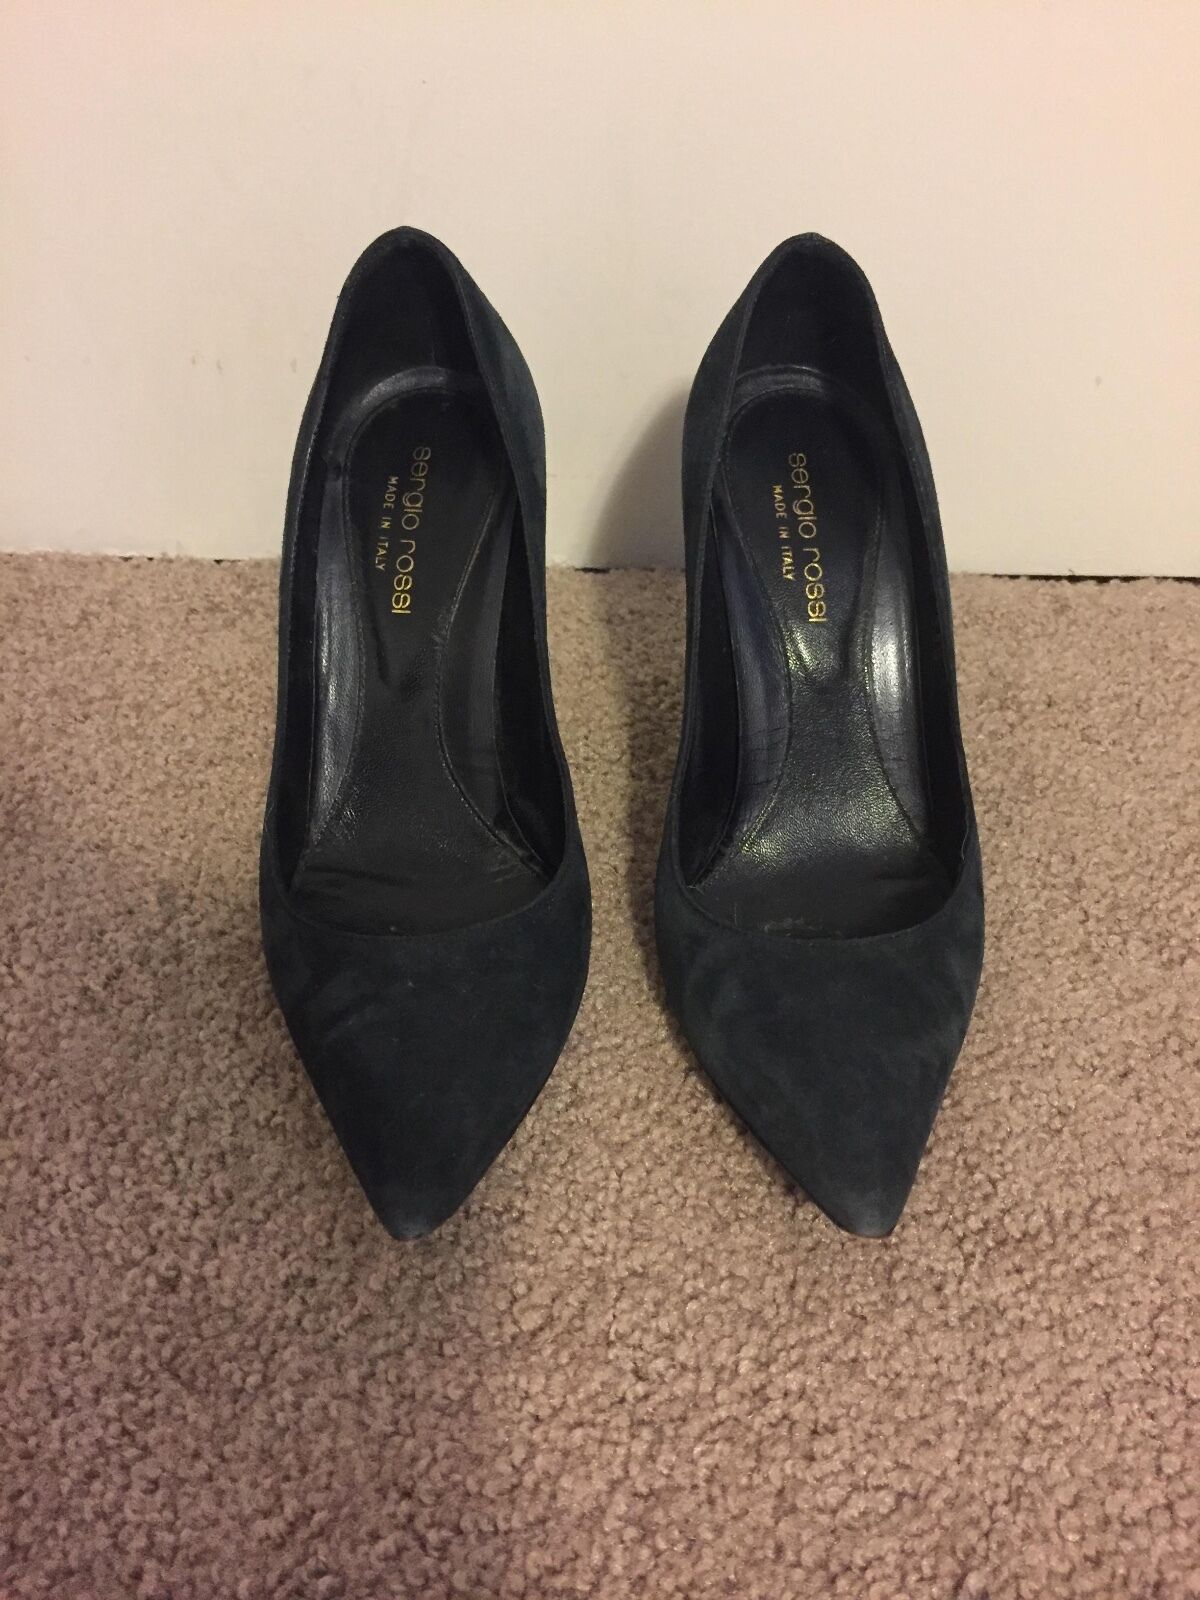 Sergio Rossi black suede leather pumps (women's size 35.5)